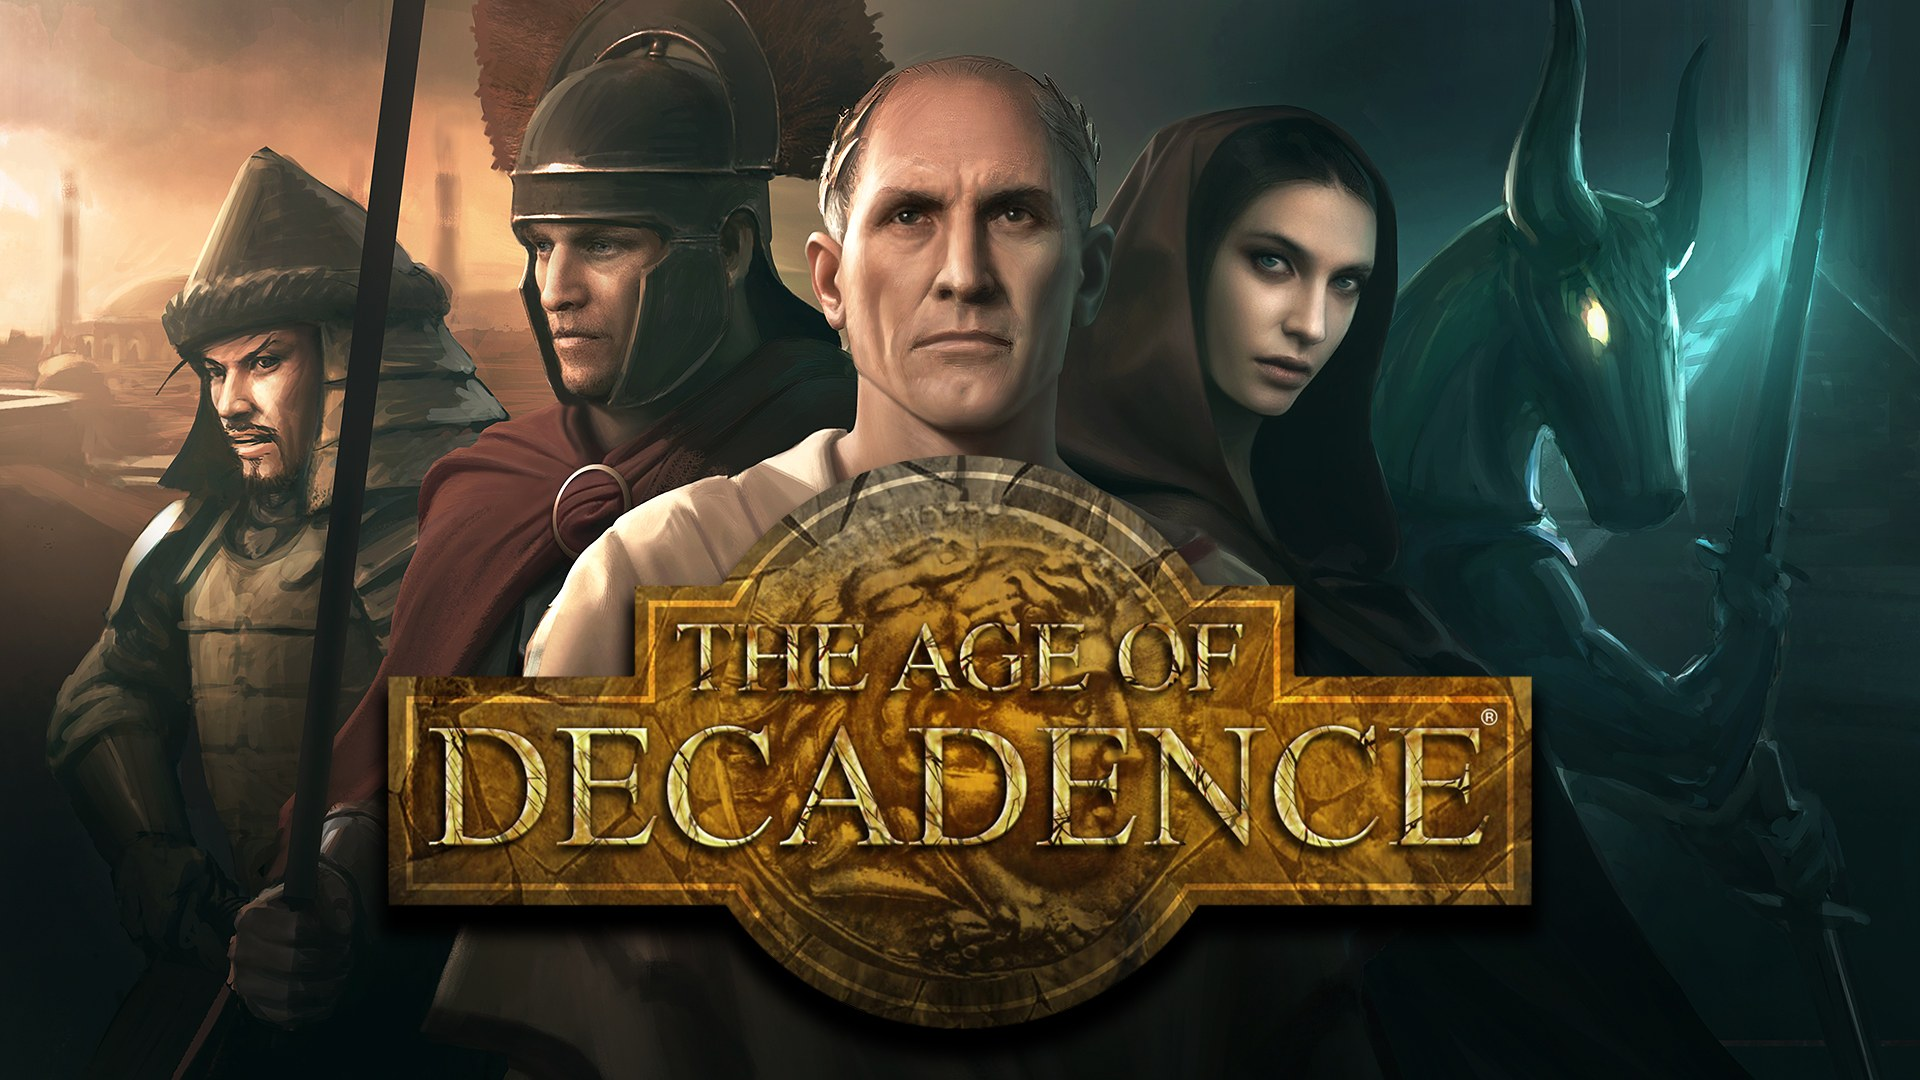 The-Age-of-Decadence-rpg